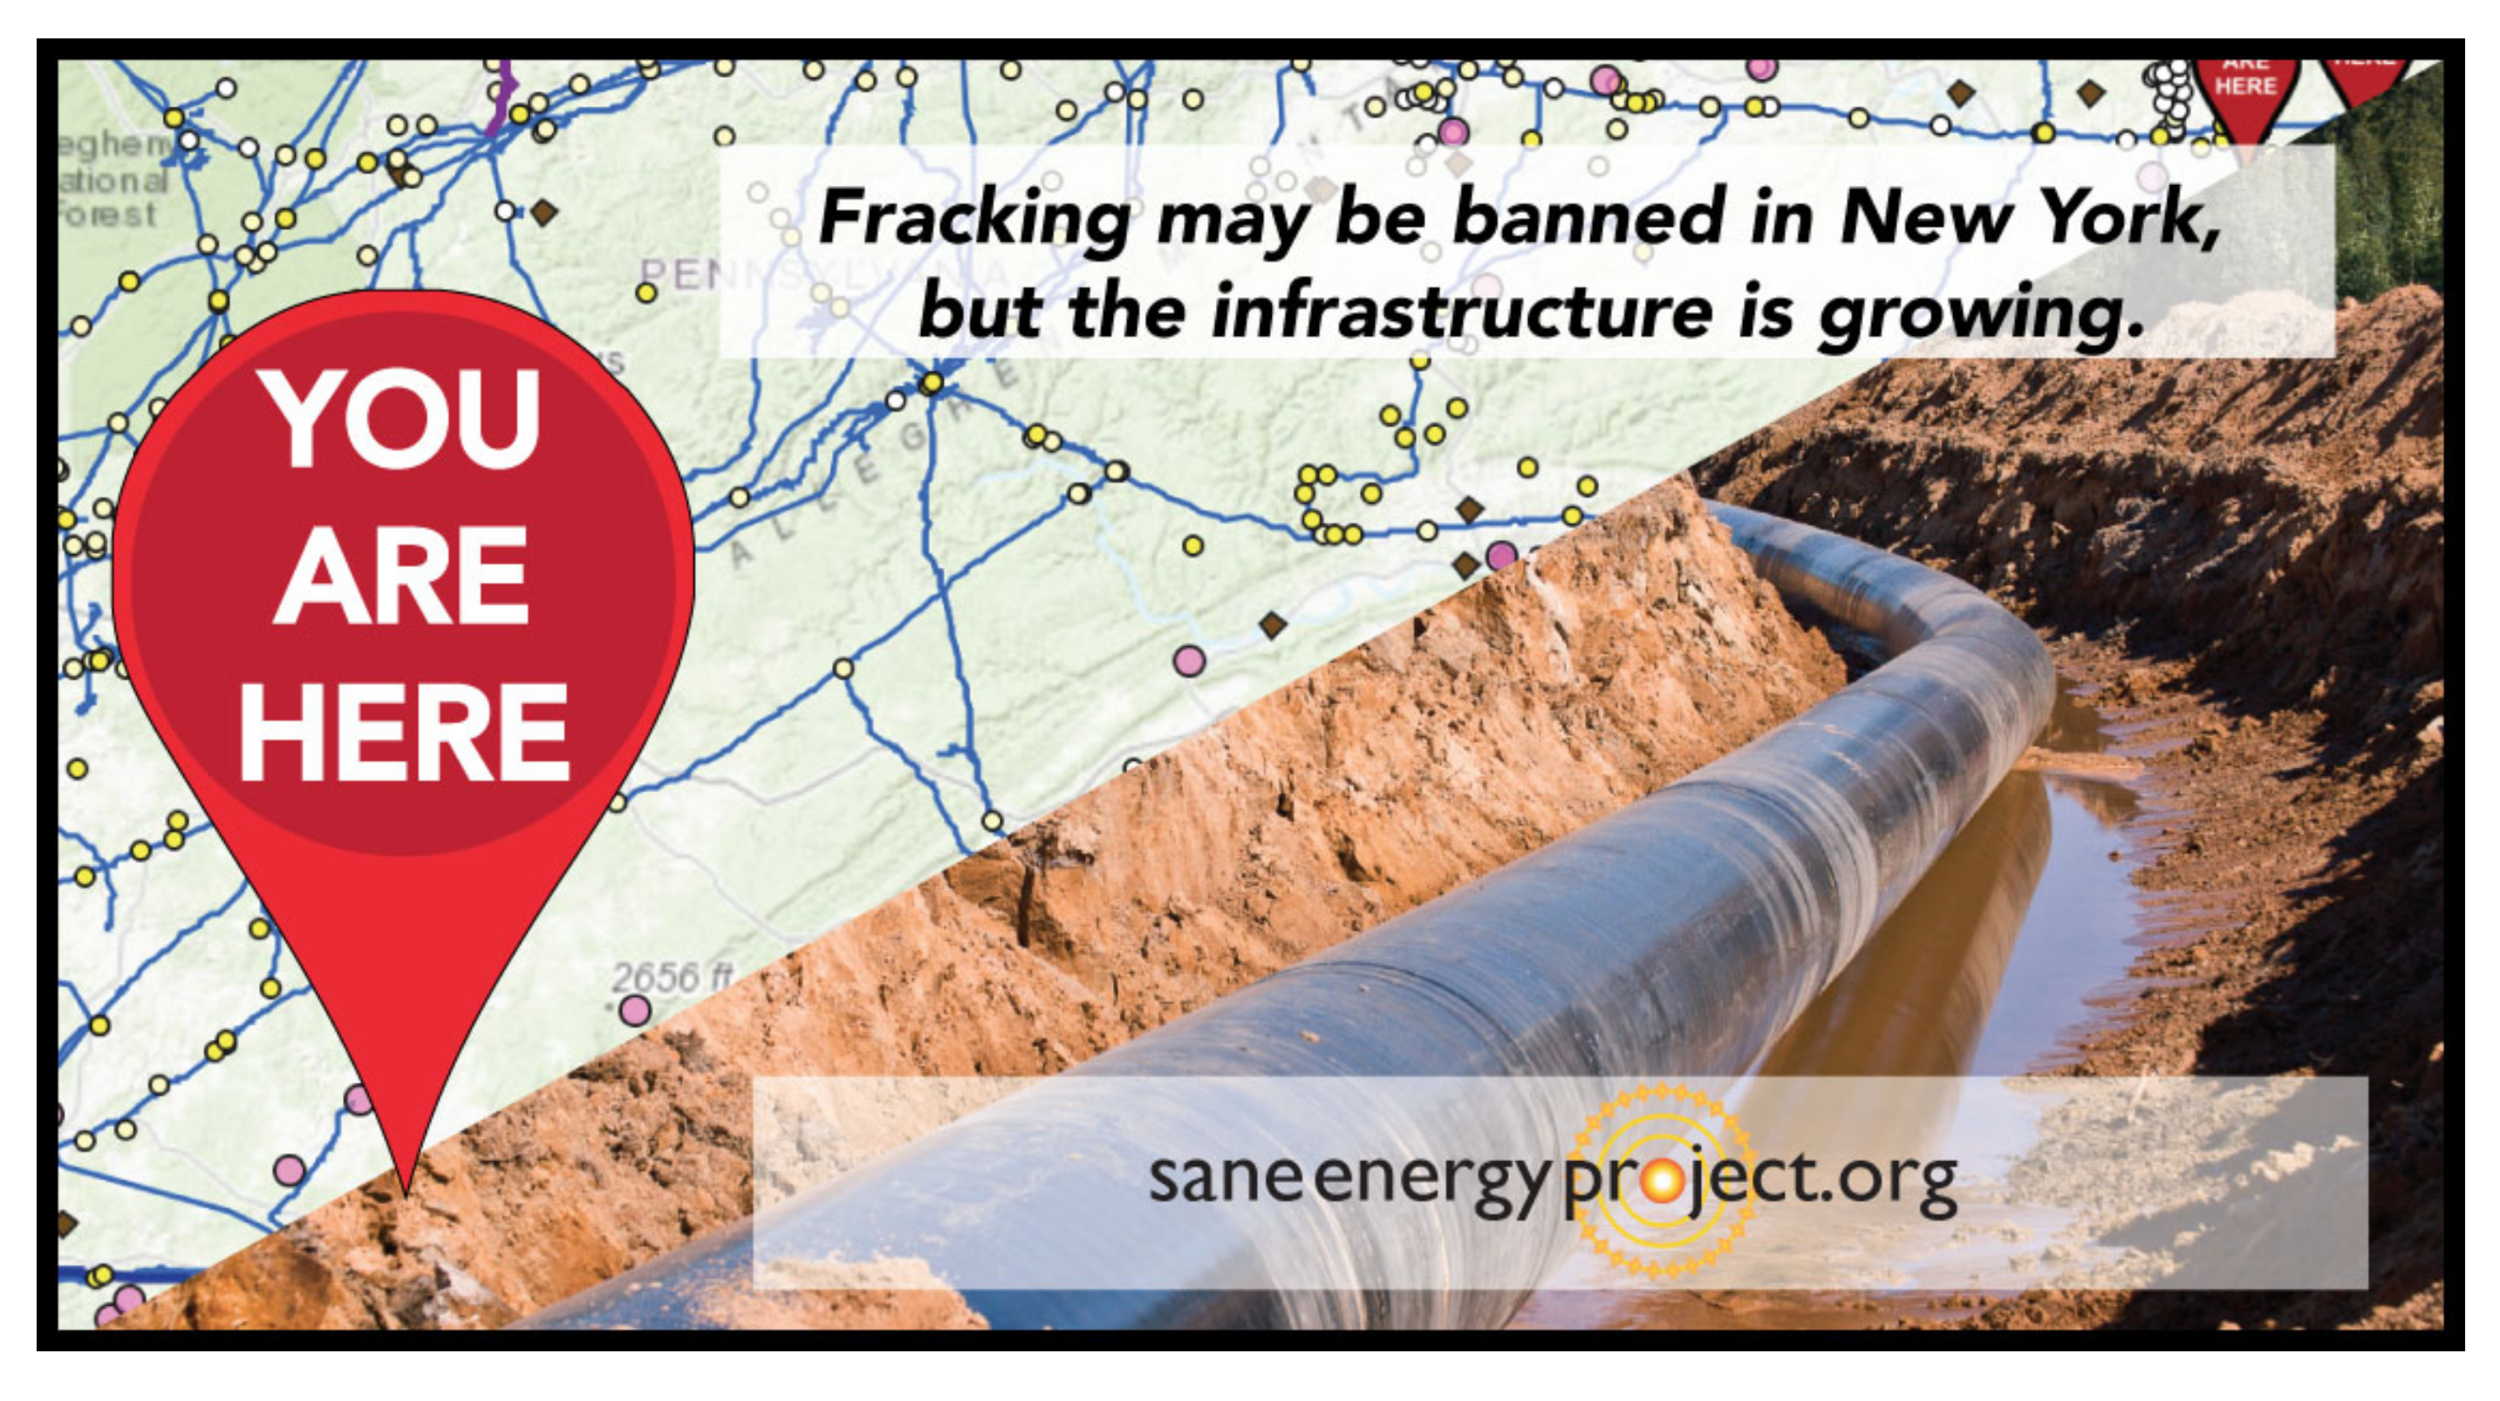 You are Here Map - Our interactive map shows you each and every pipeline criss-crossing NY State, and connects you to the communities fighting them.